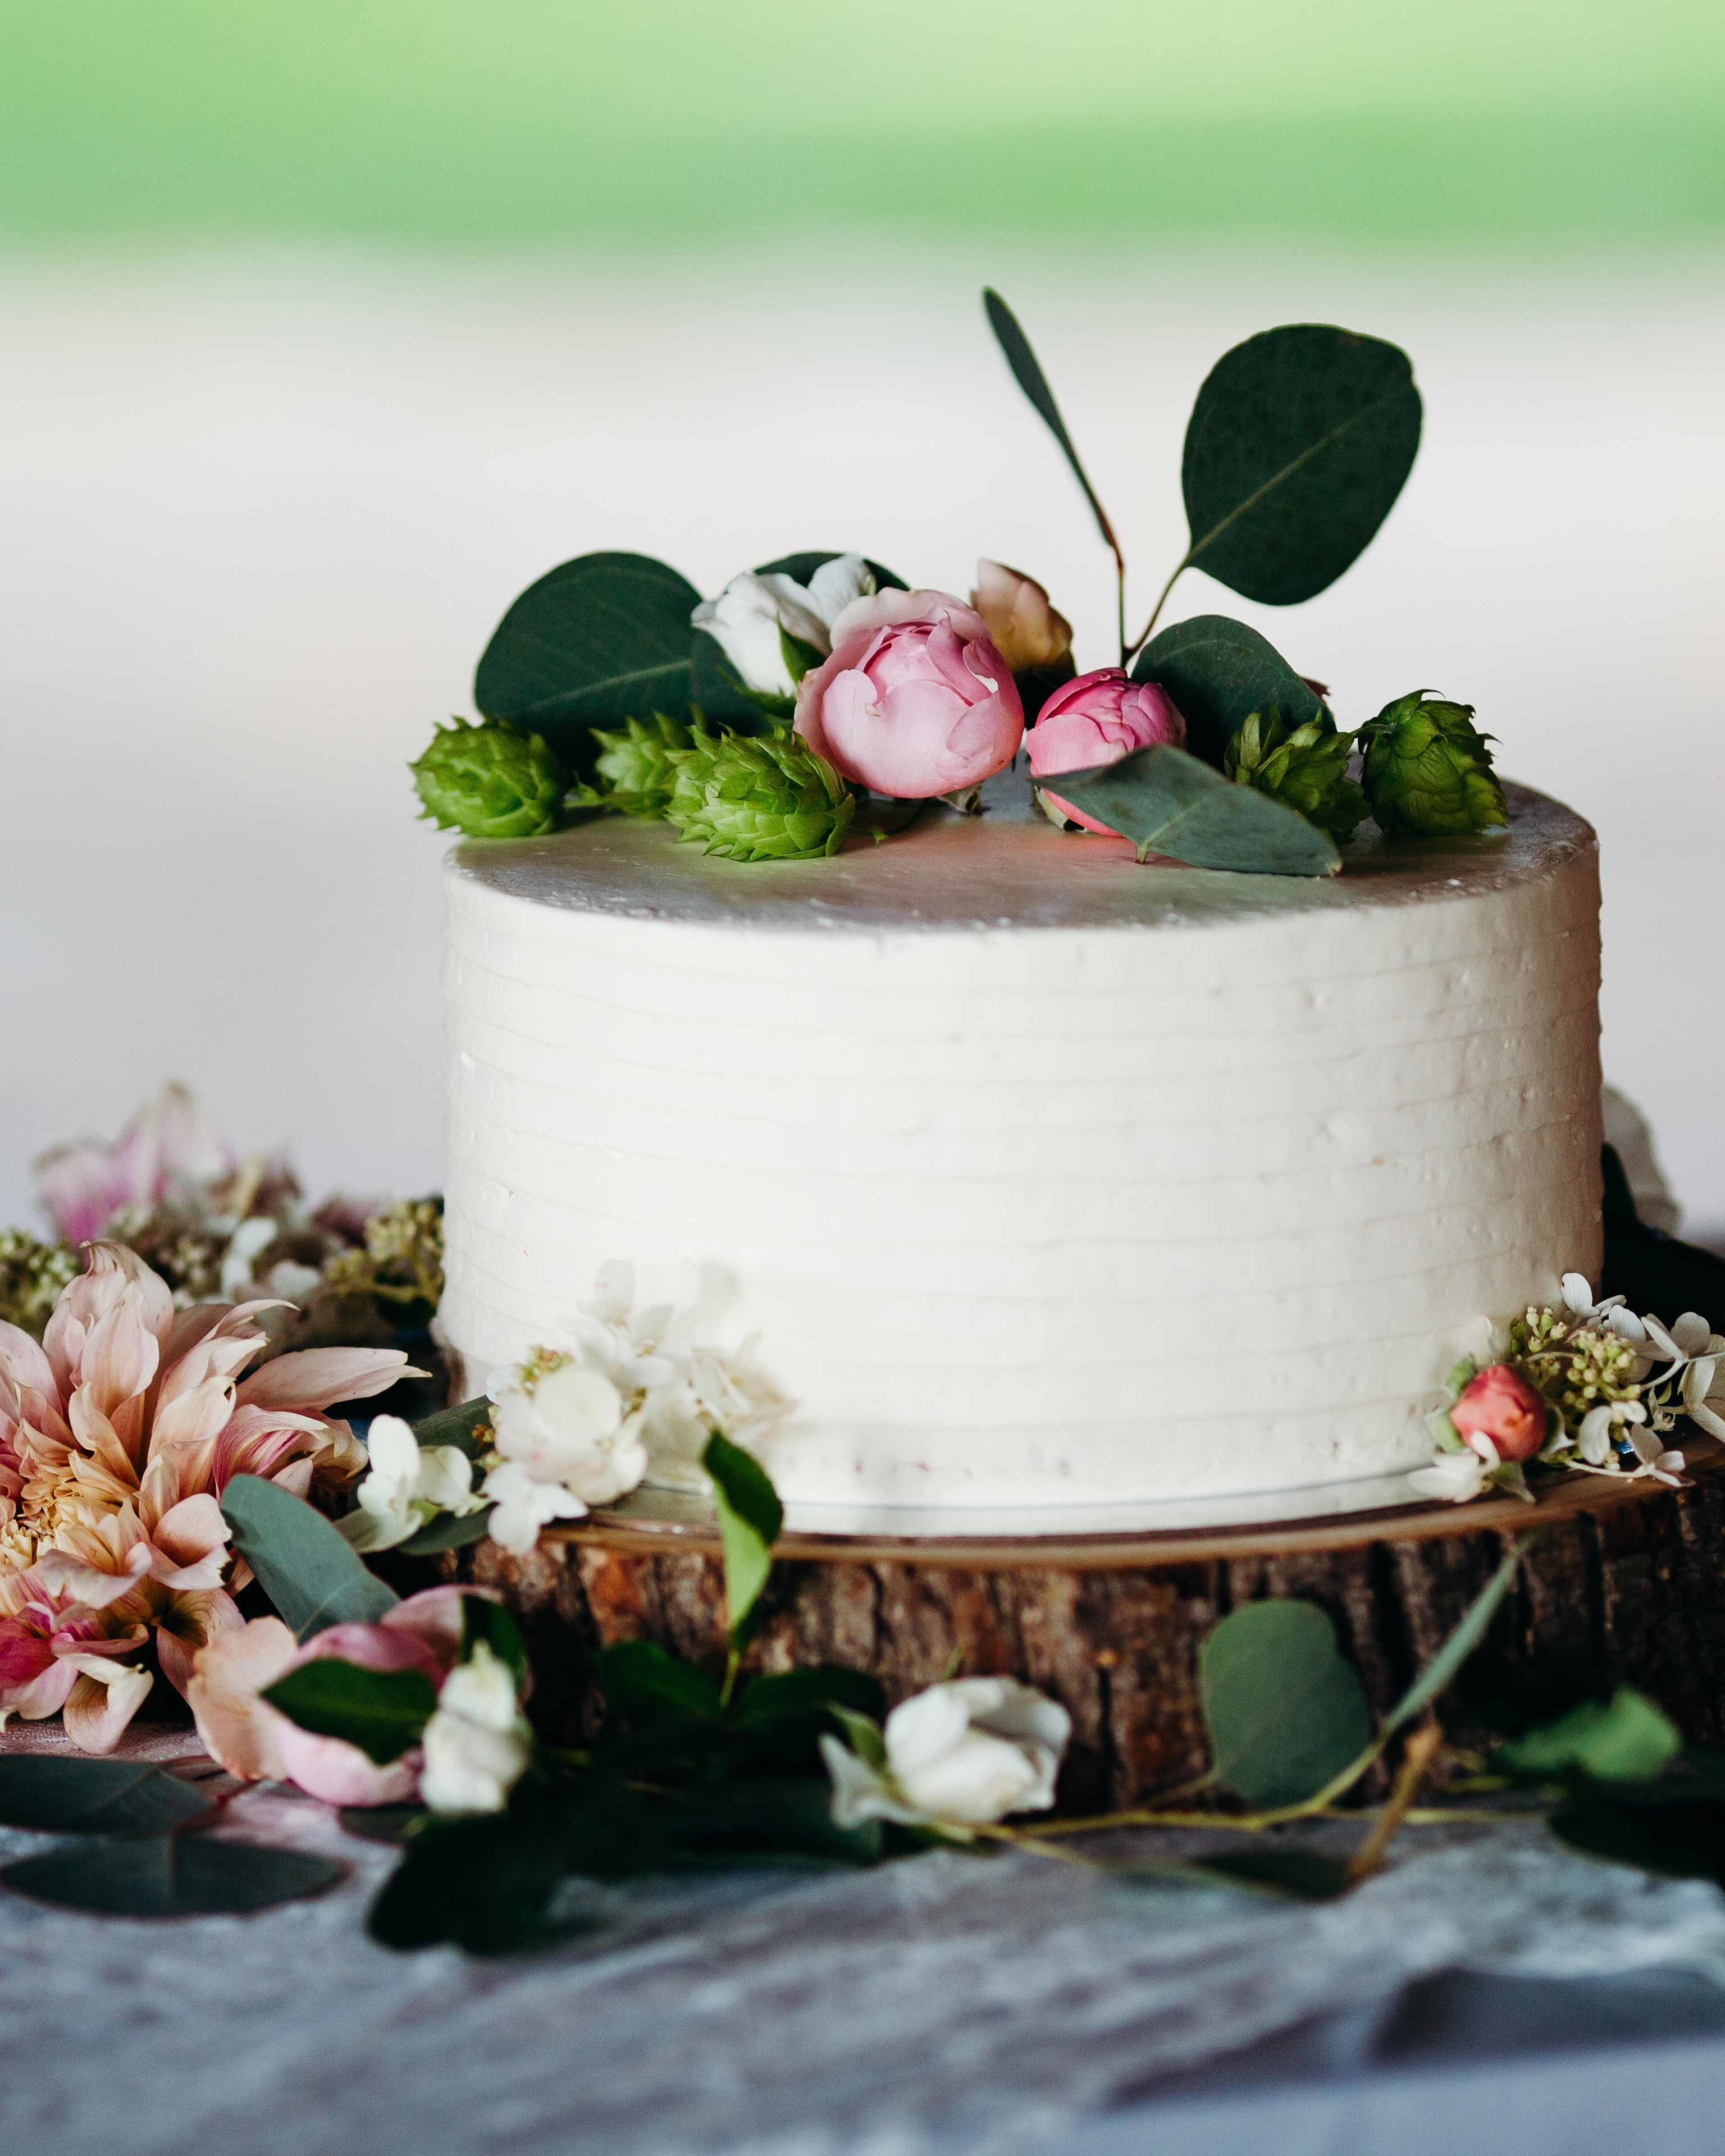 Wedding Cake Flowers Edible: 44 Wedding Cakes With Fresh Flowers